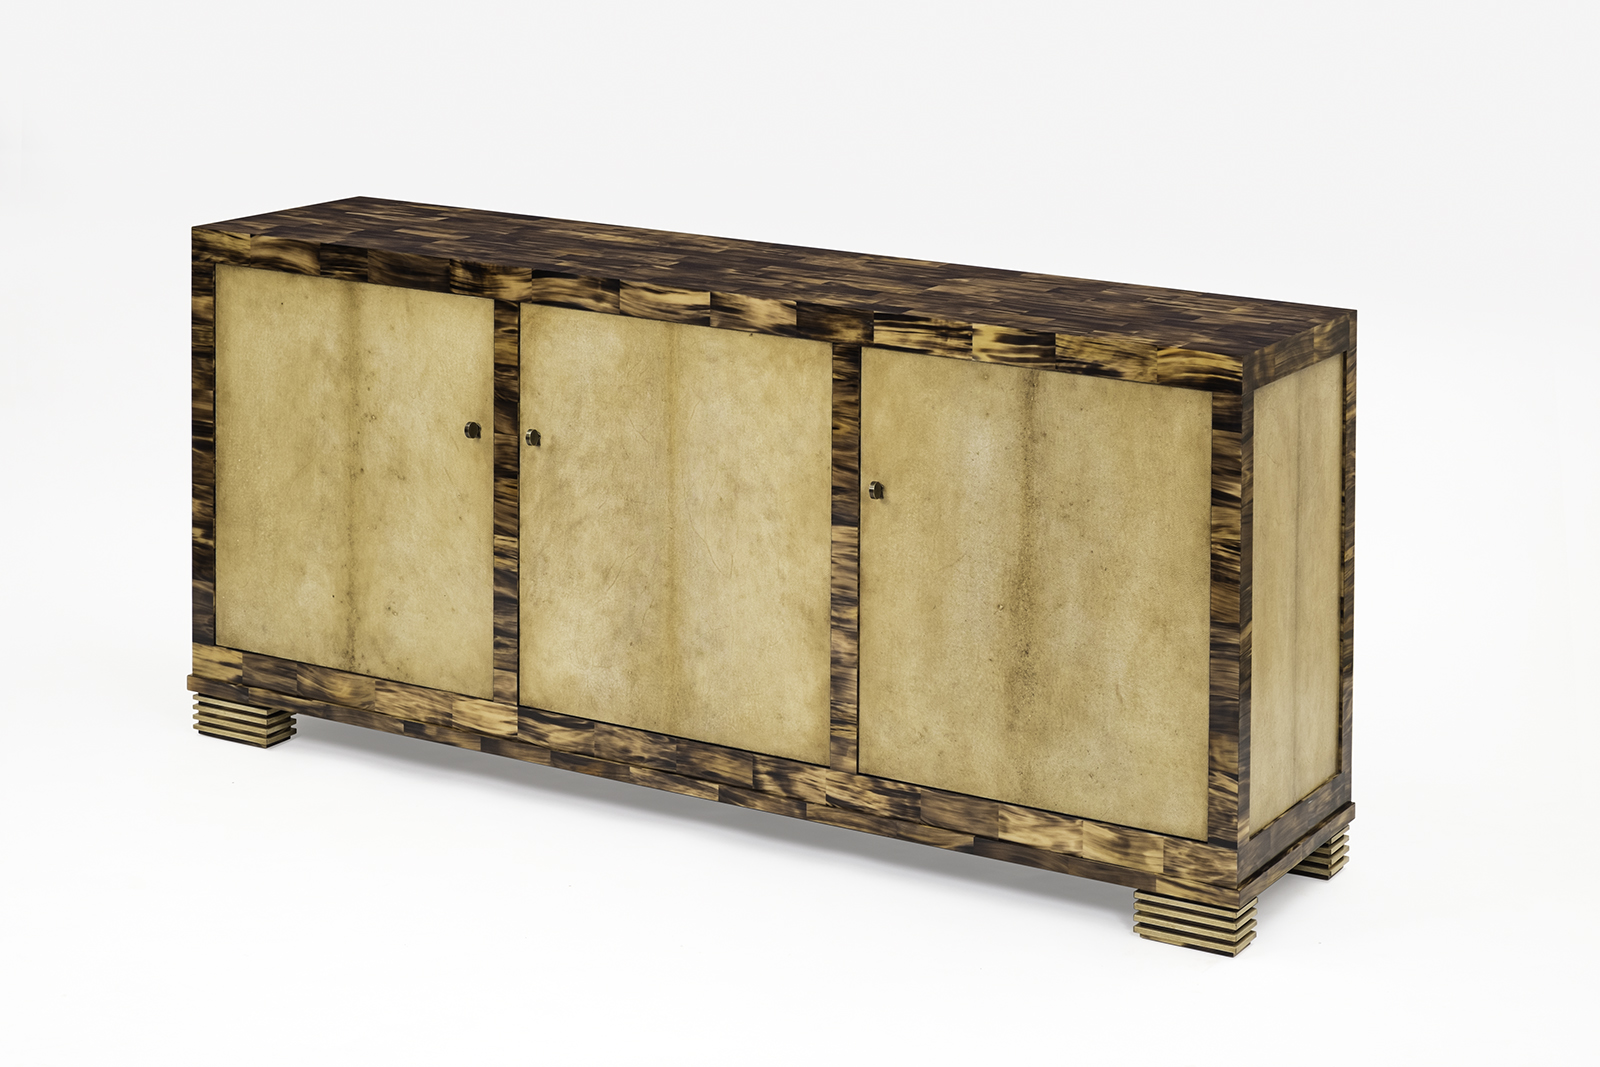 Sideboard in Light-Toned Horn & Aged Parchment